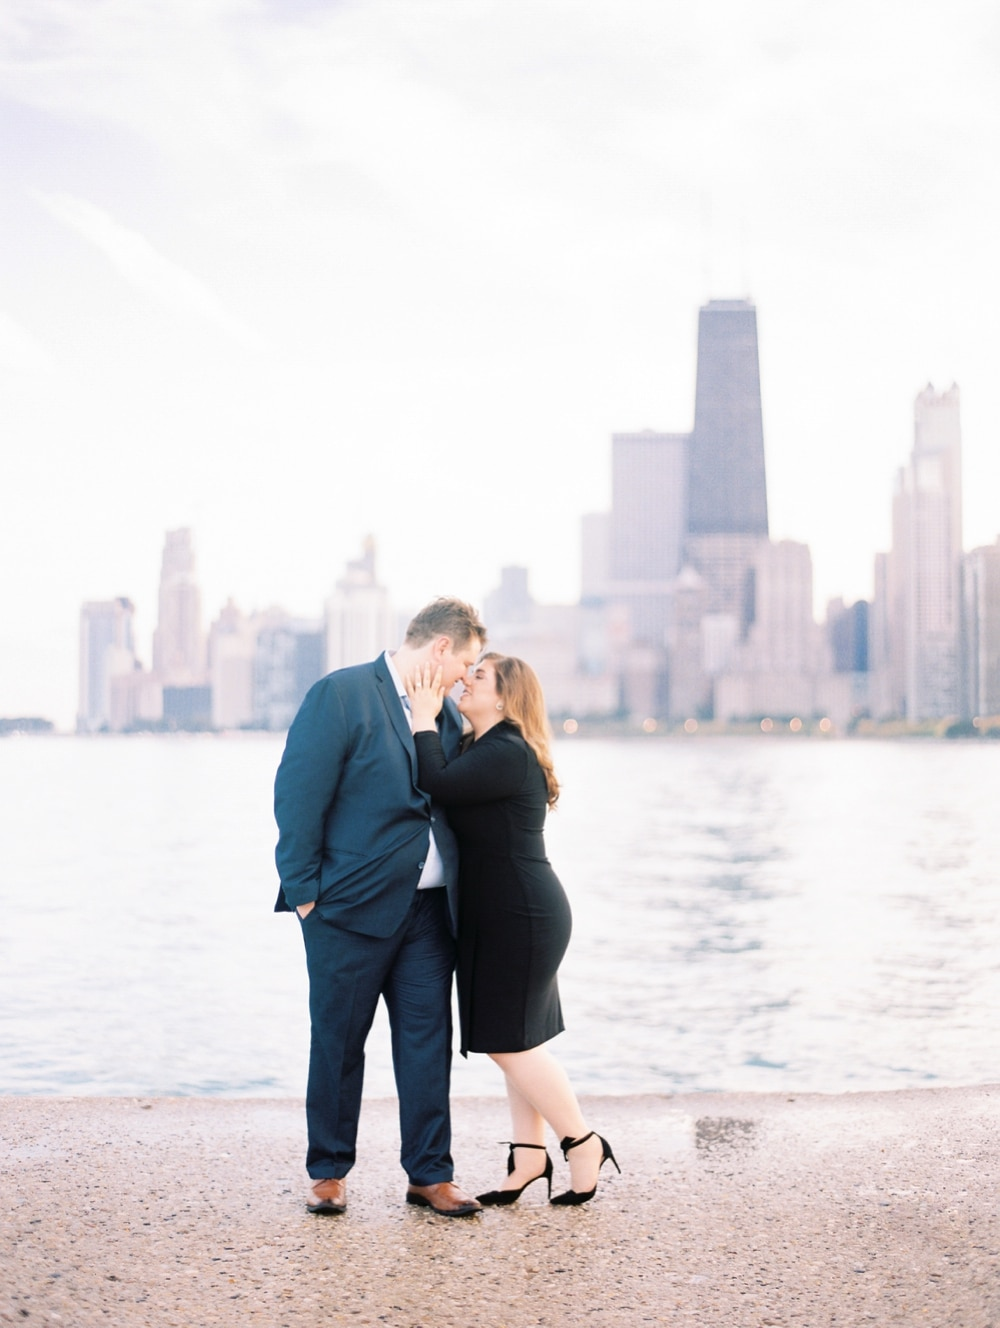 kristin-la-voie-photography-chicago-wedding-photographer-35